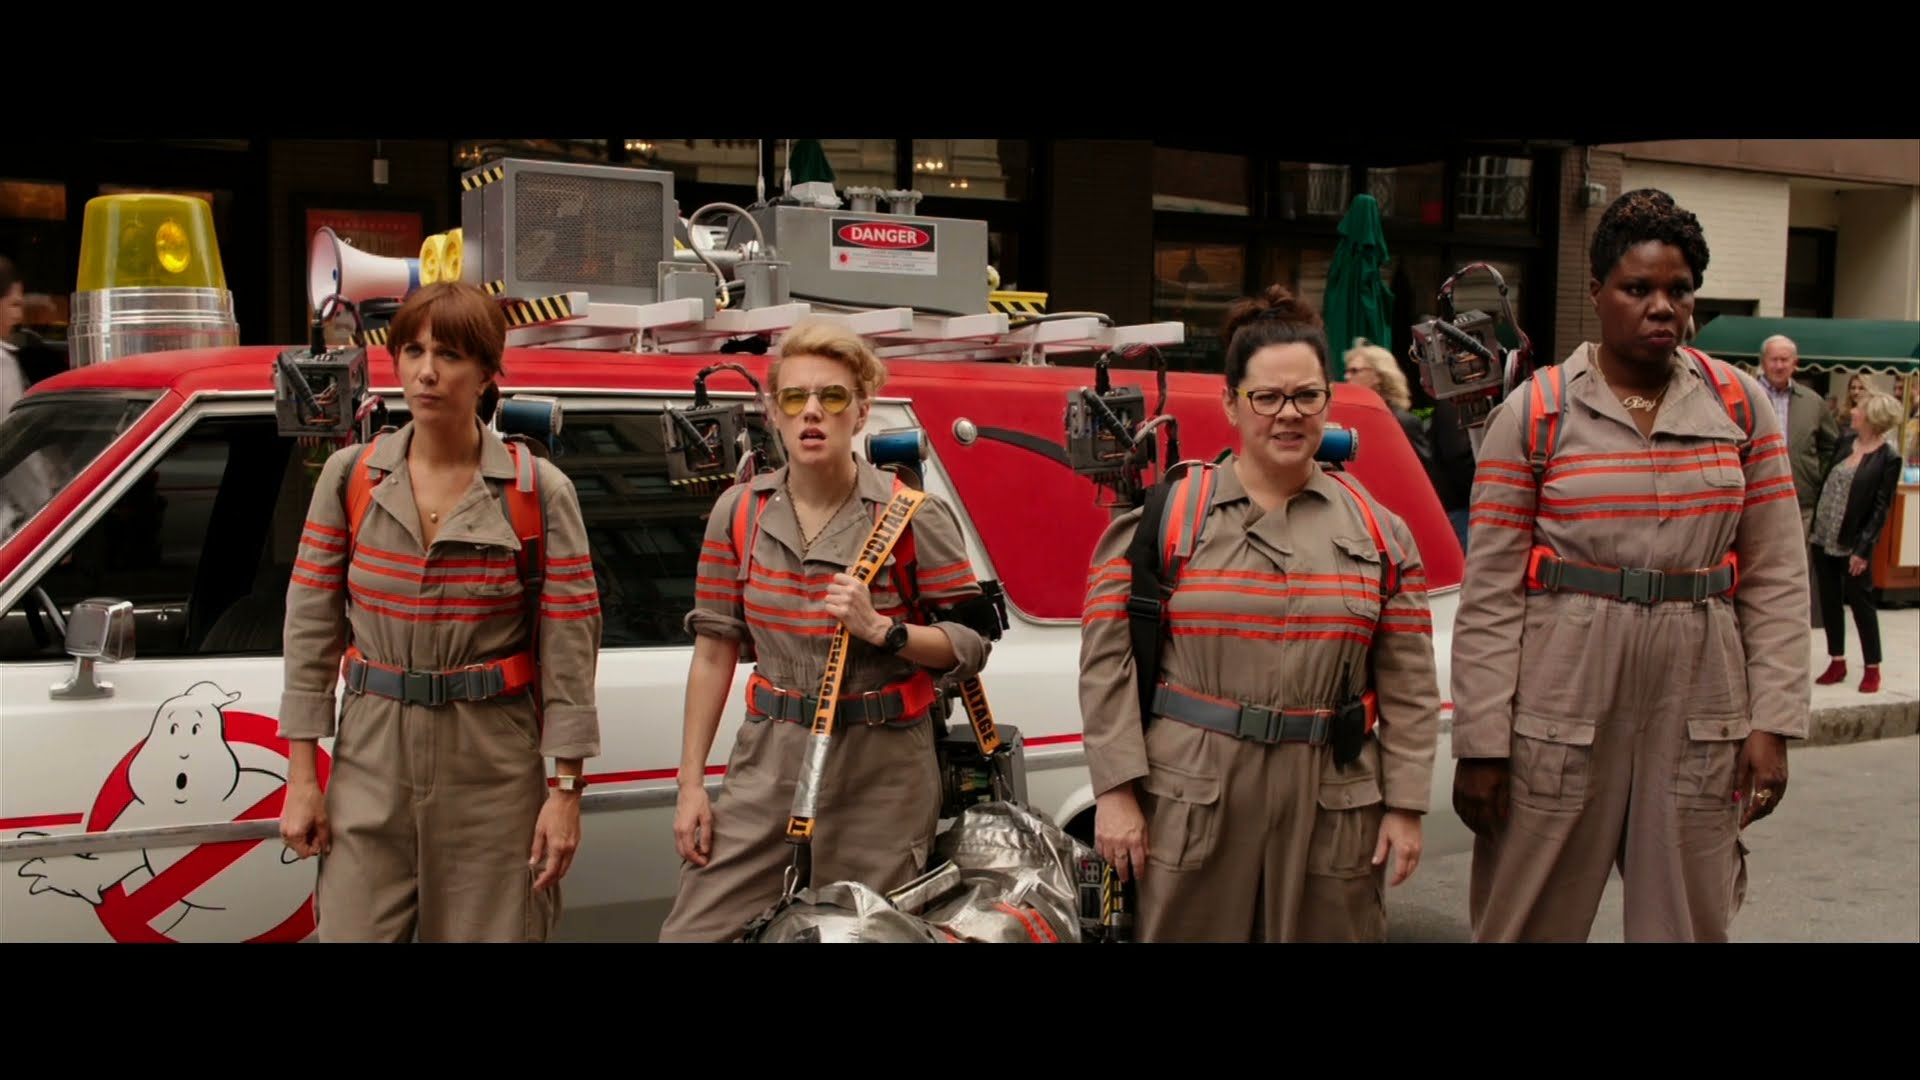 Behind the Scenes of the new Ghostbusters!